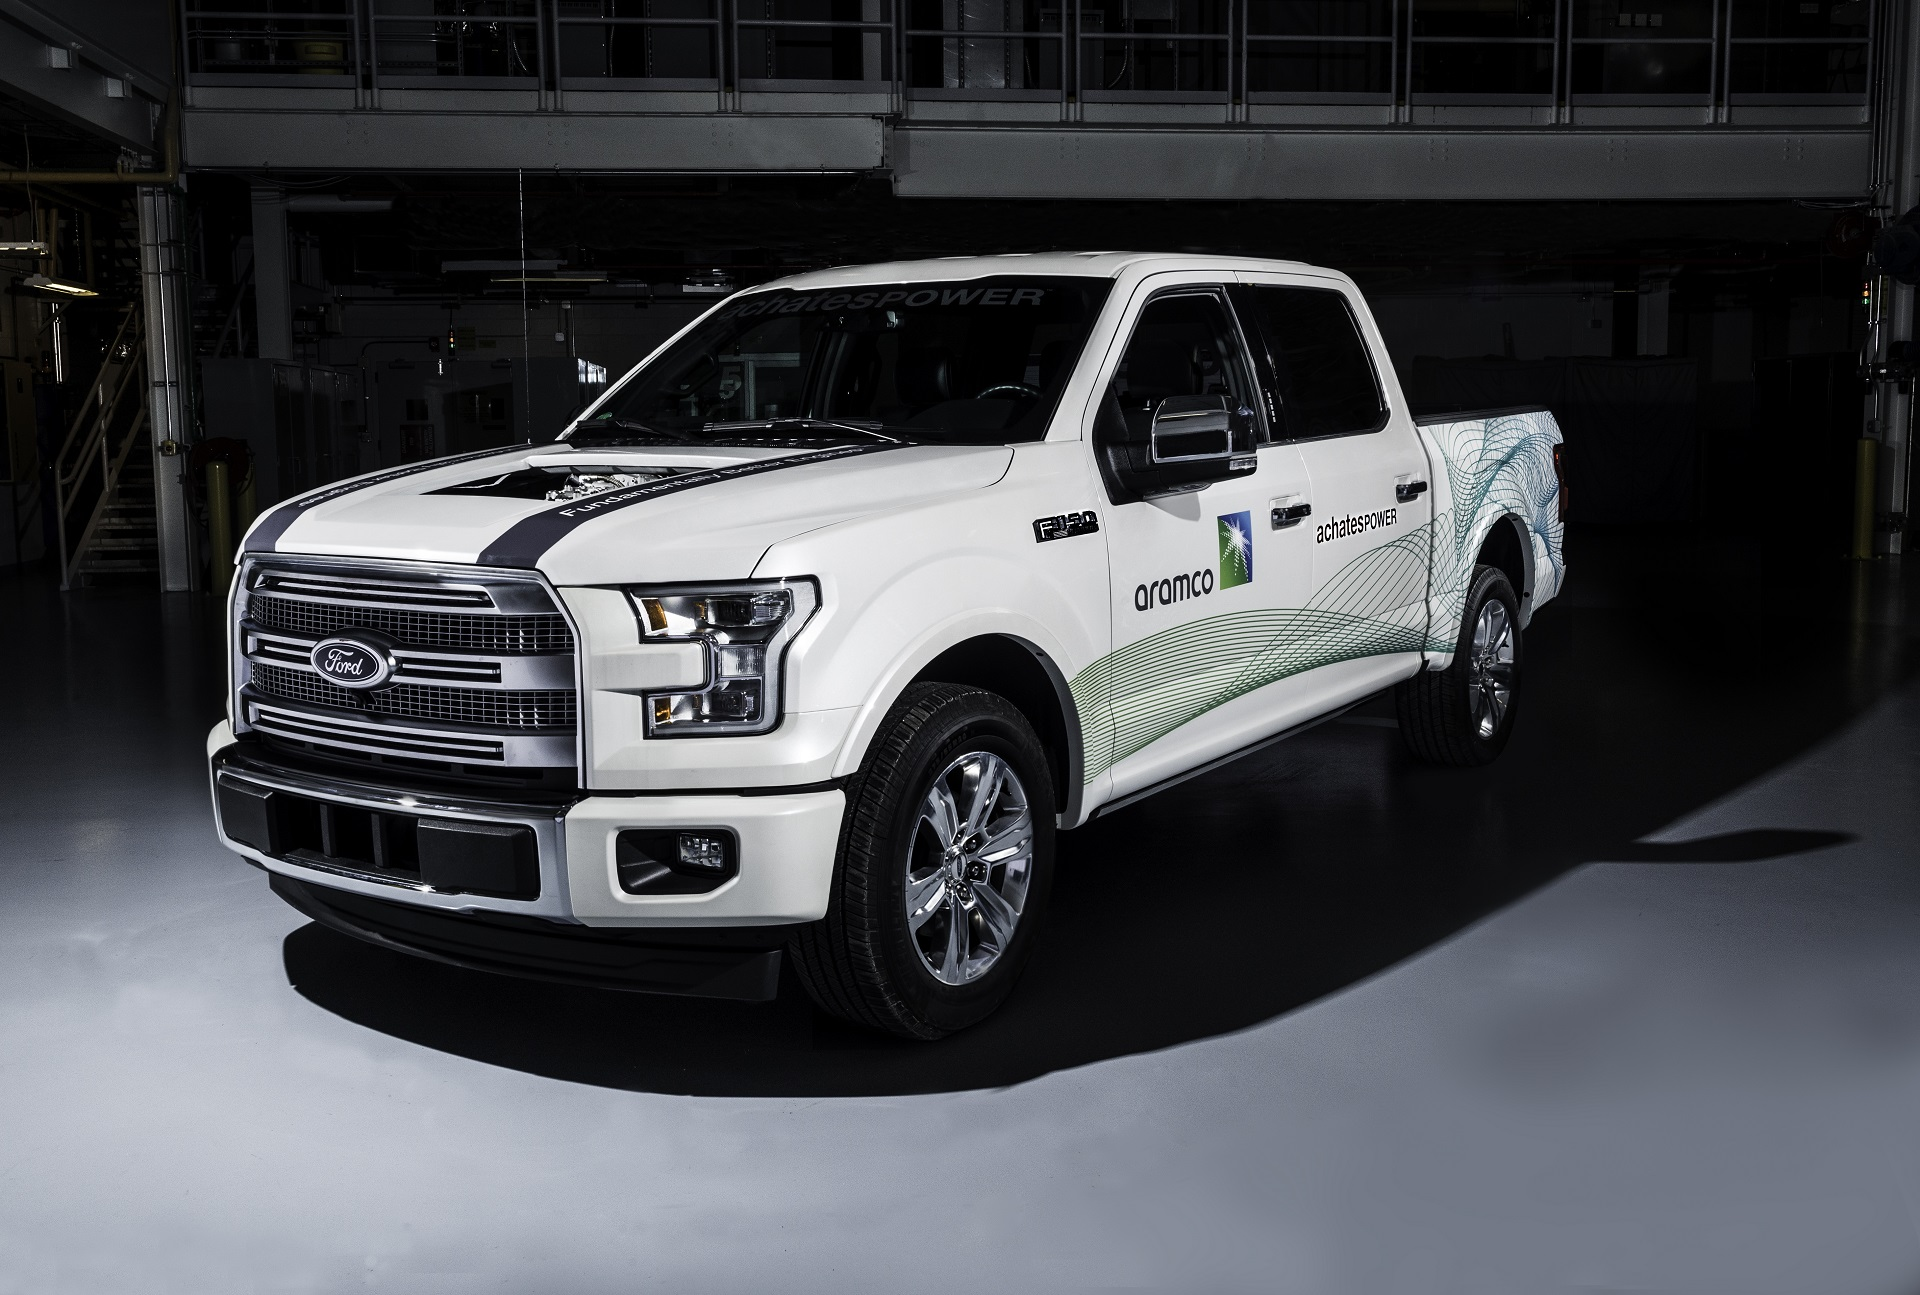 Achates engine in Ford F-150 pickup targets 37 mpg, with ...